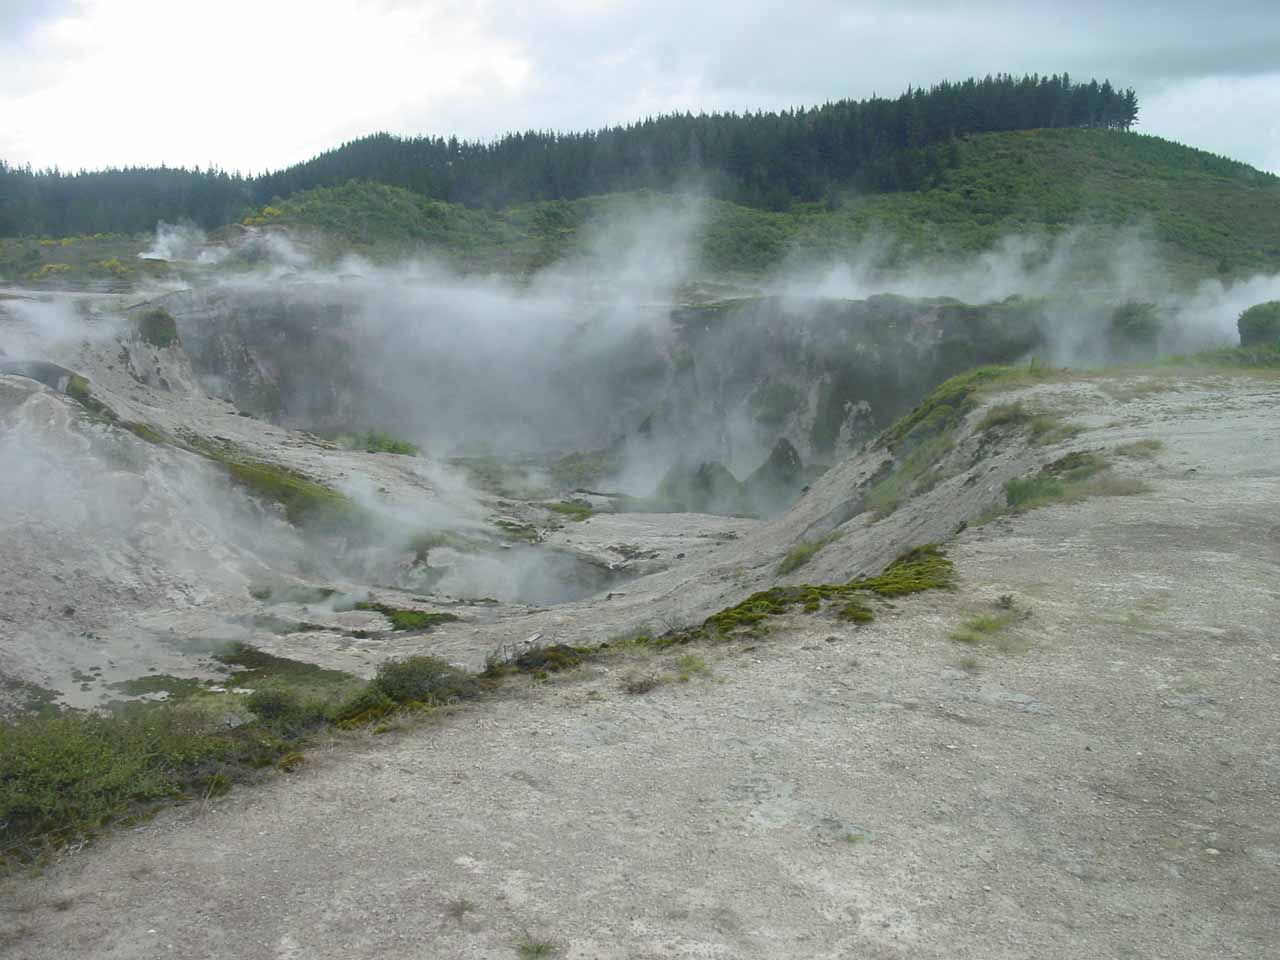 Another look at one of the craters of the Craters of the Moon